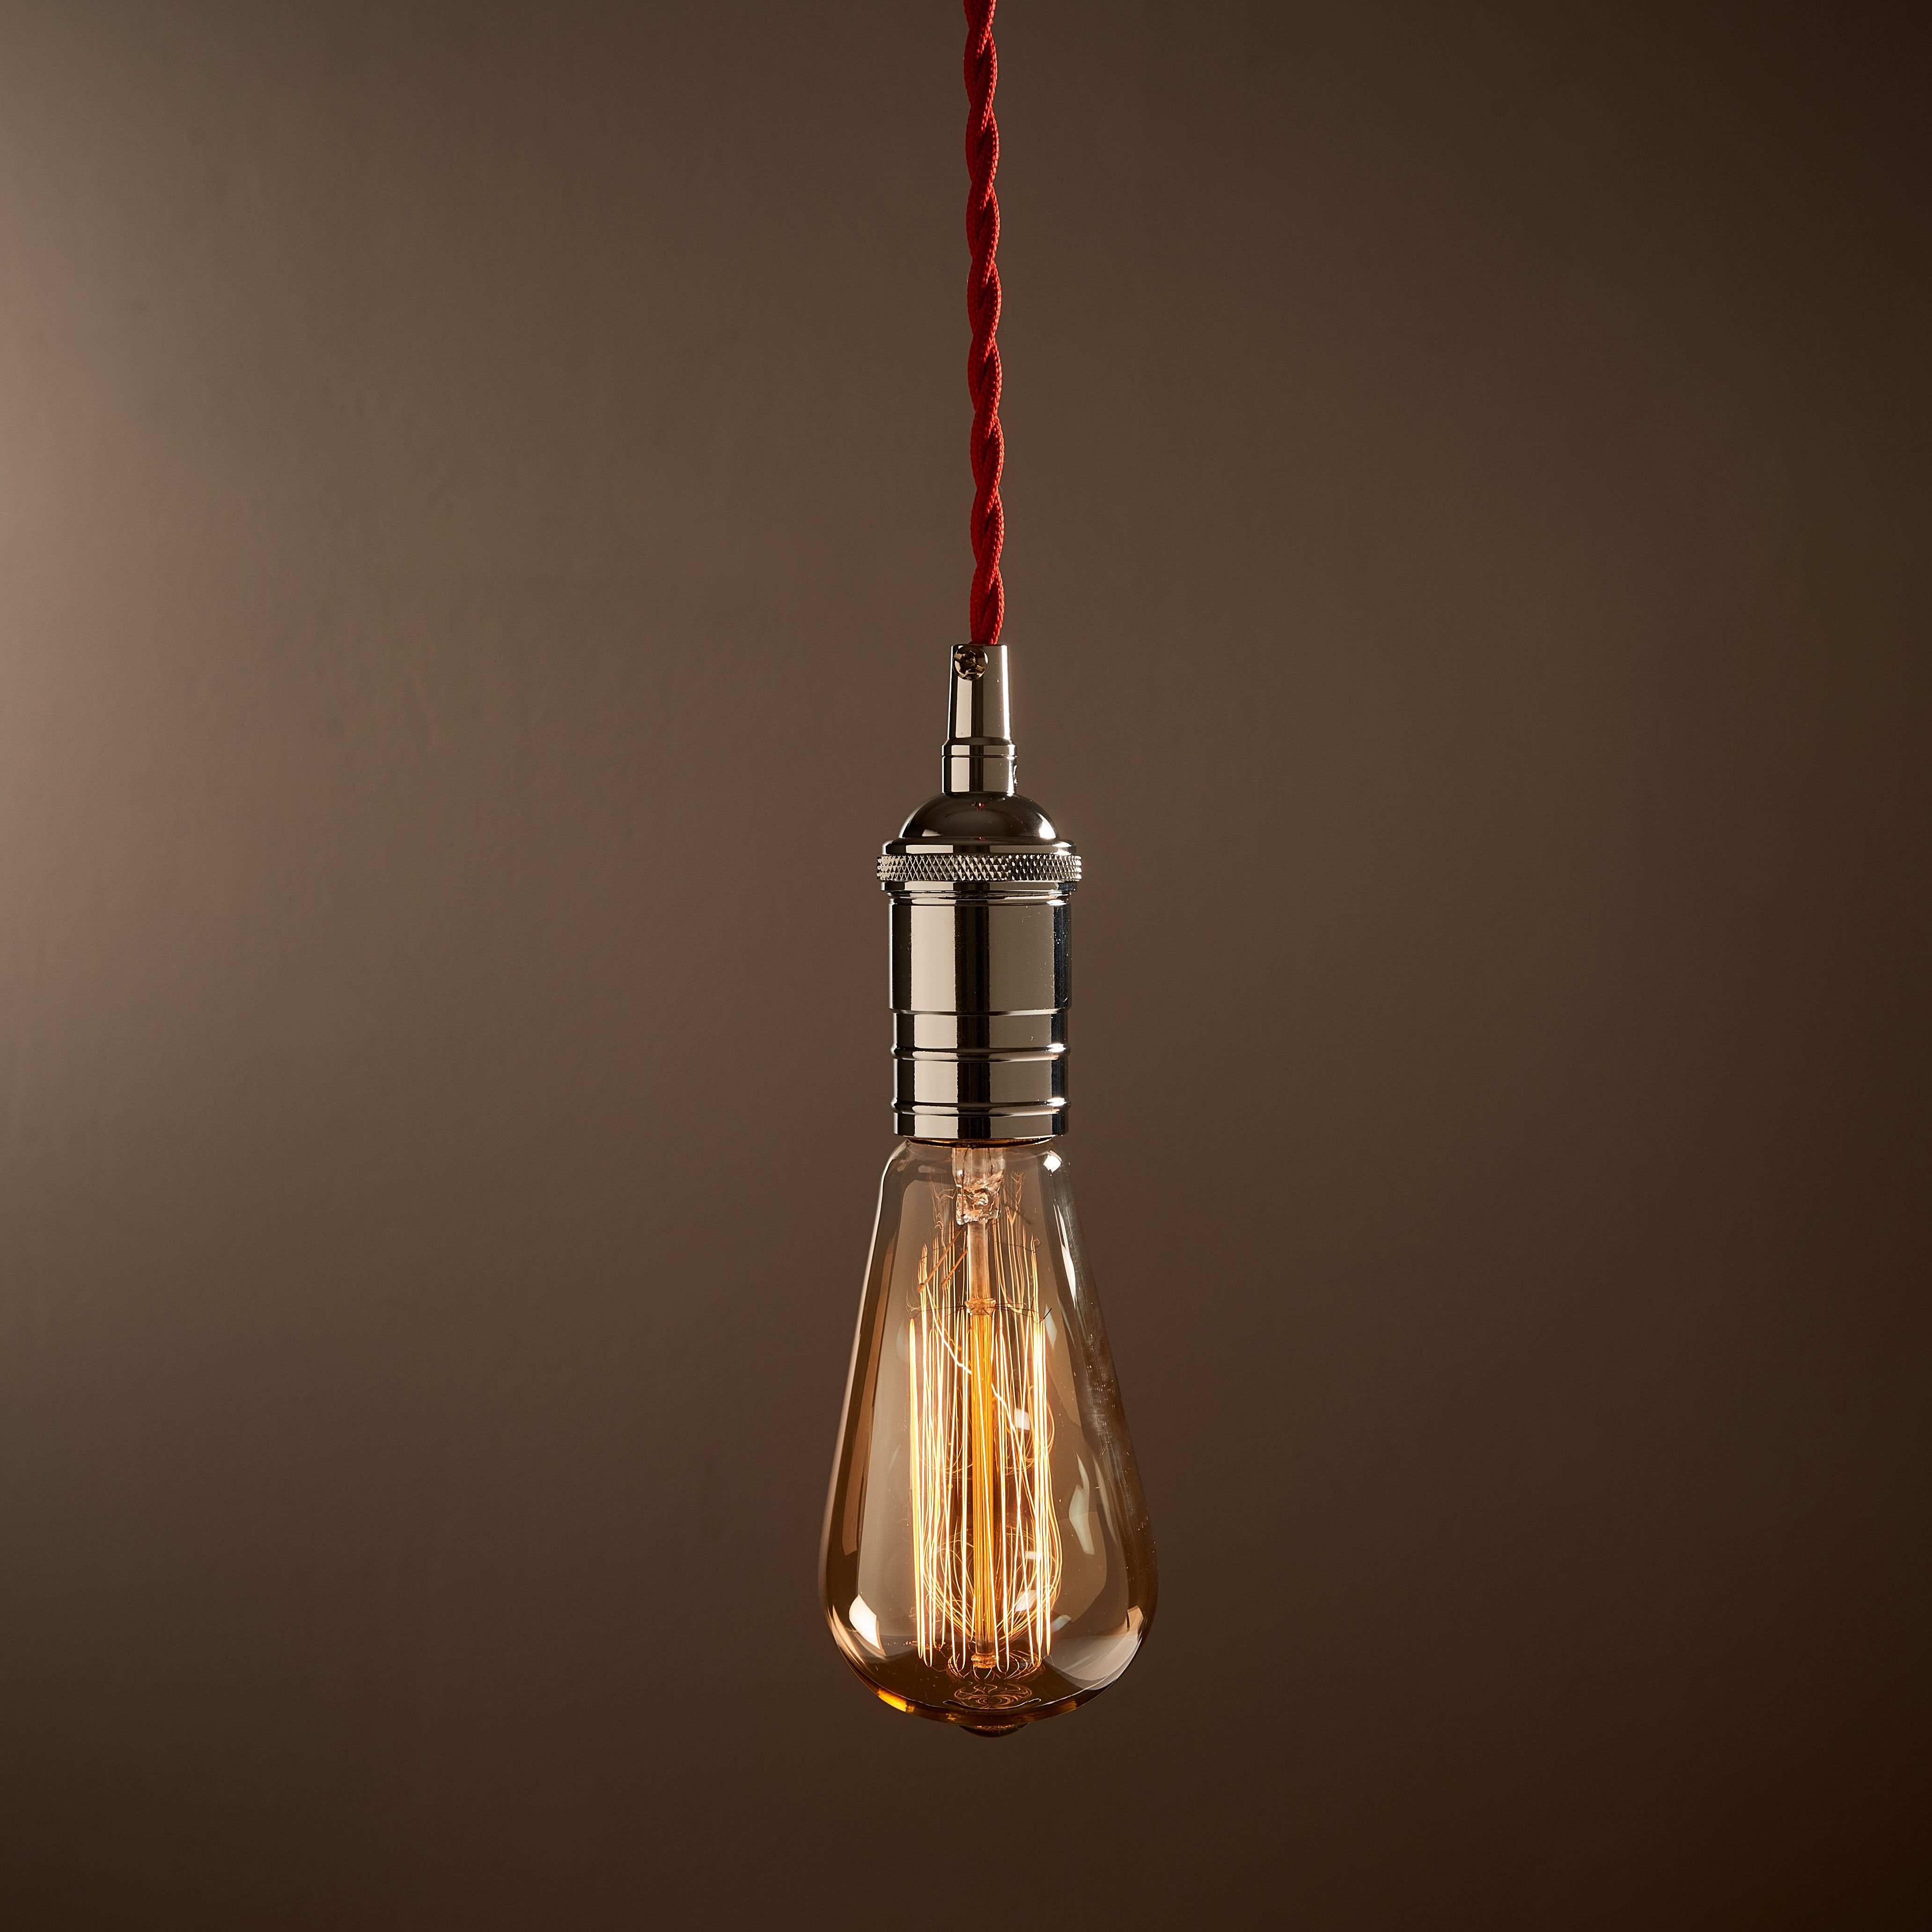 Pin by cuadros lifestyle on VINTAGE LIGHTS - GENIALE ERLEUCHTUNG ...